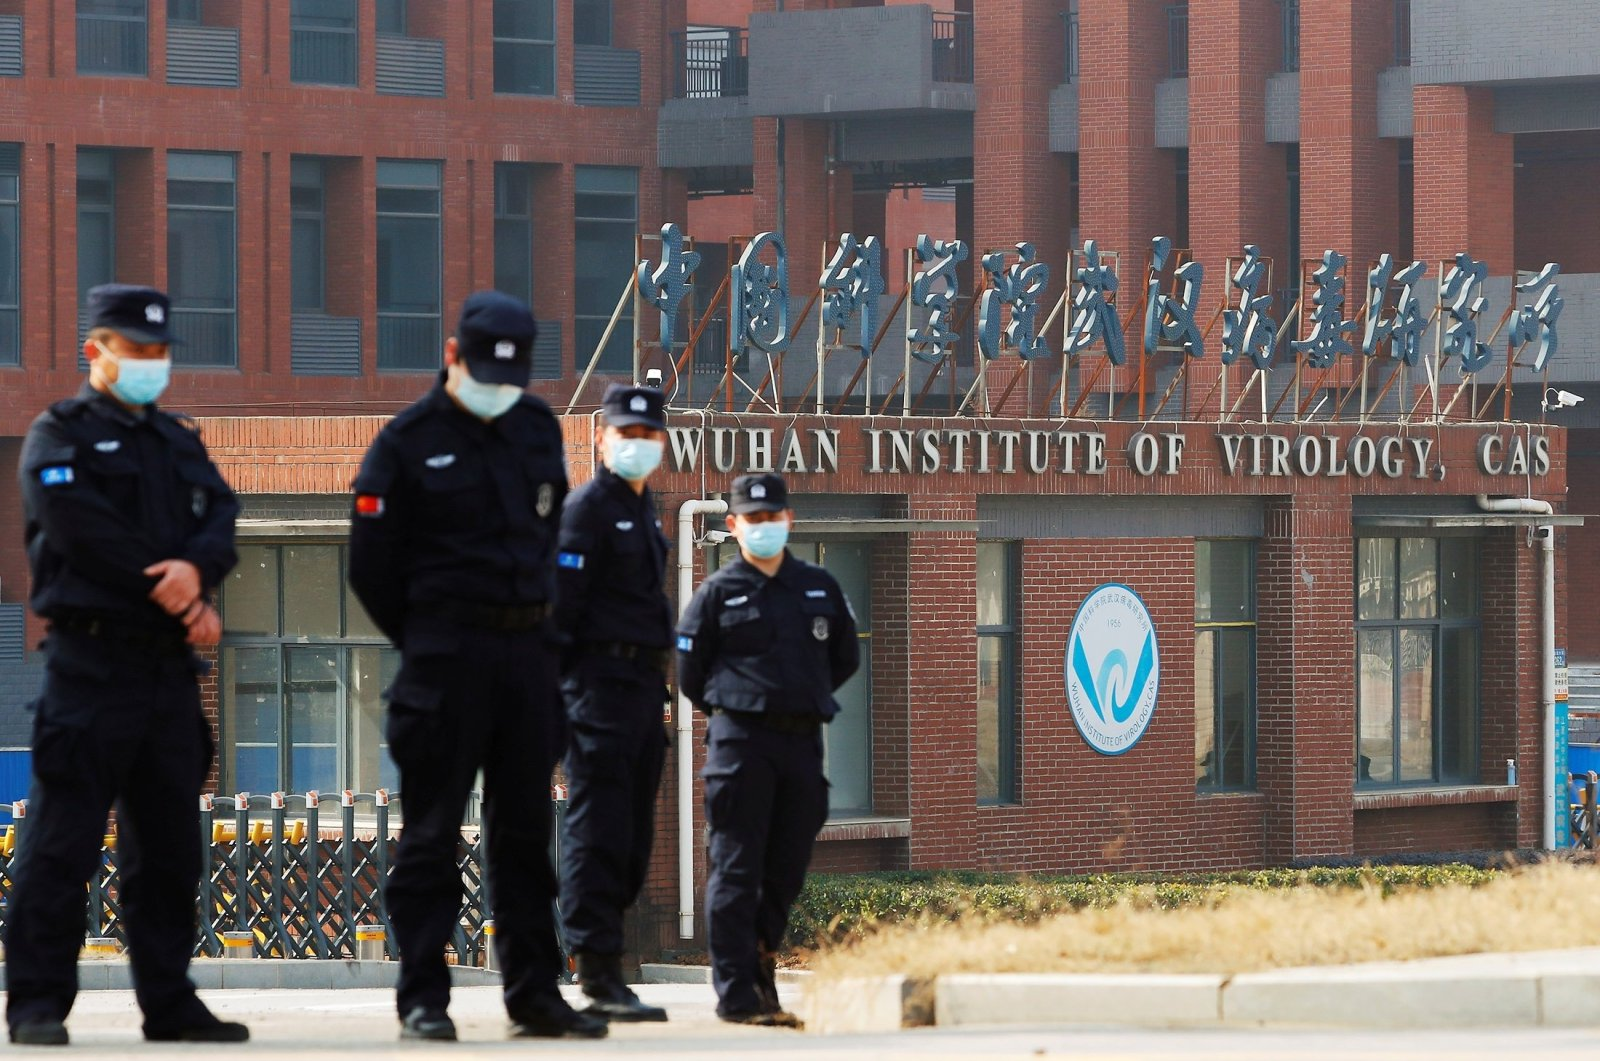 Security personnel keep watch outside Wuhan Institute of Virology during a visit by a World Health Organization (WHO) team tasked with investigating the origins of the COVID-19 disease, in Wuhan, Hubei province, China on Feb. 3, 2021.